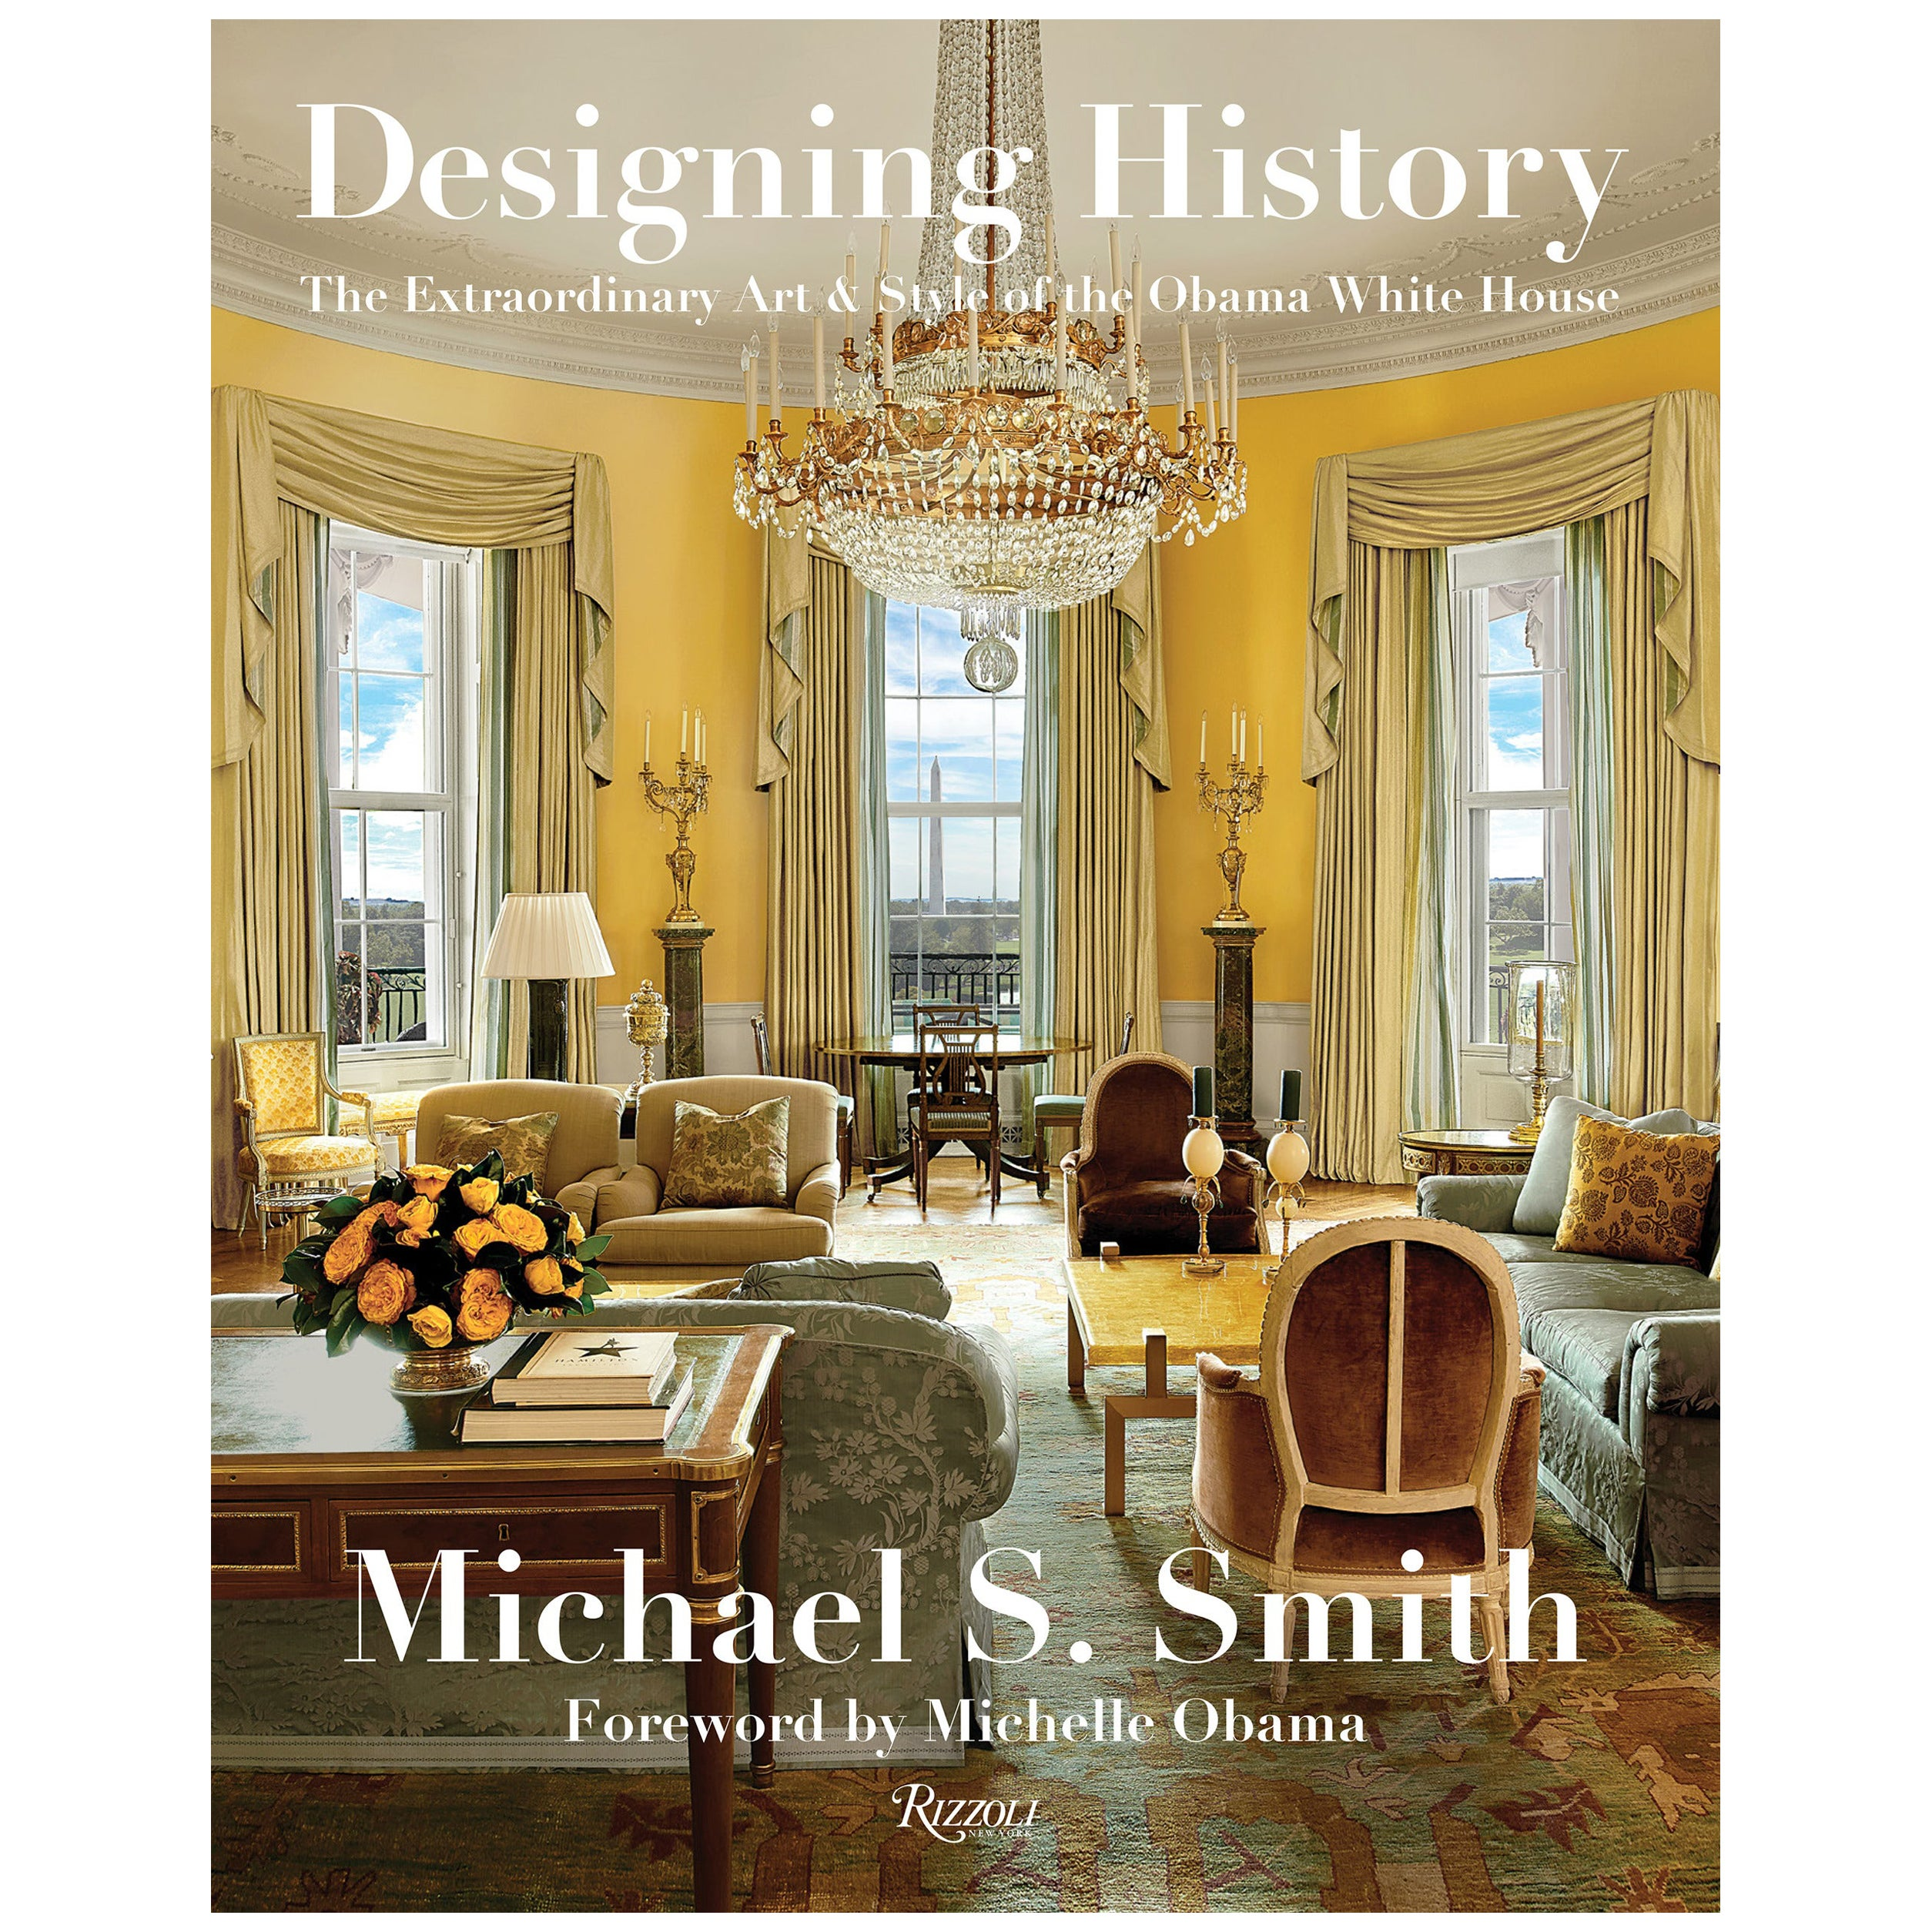 Designing History the Extraordinary Art & Style of the Obama White House